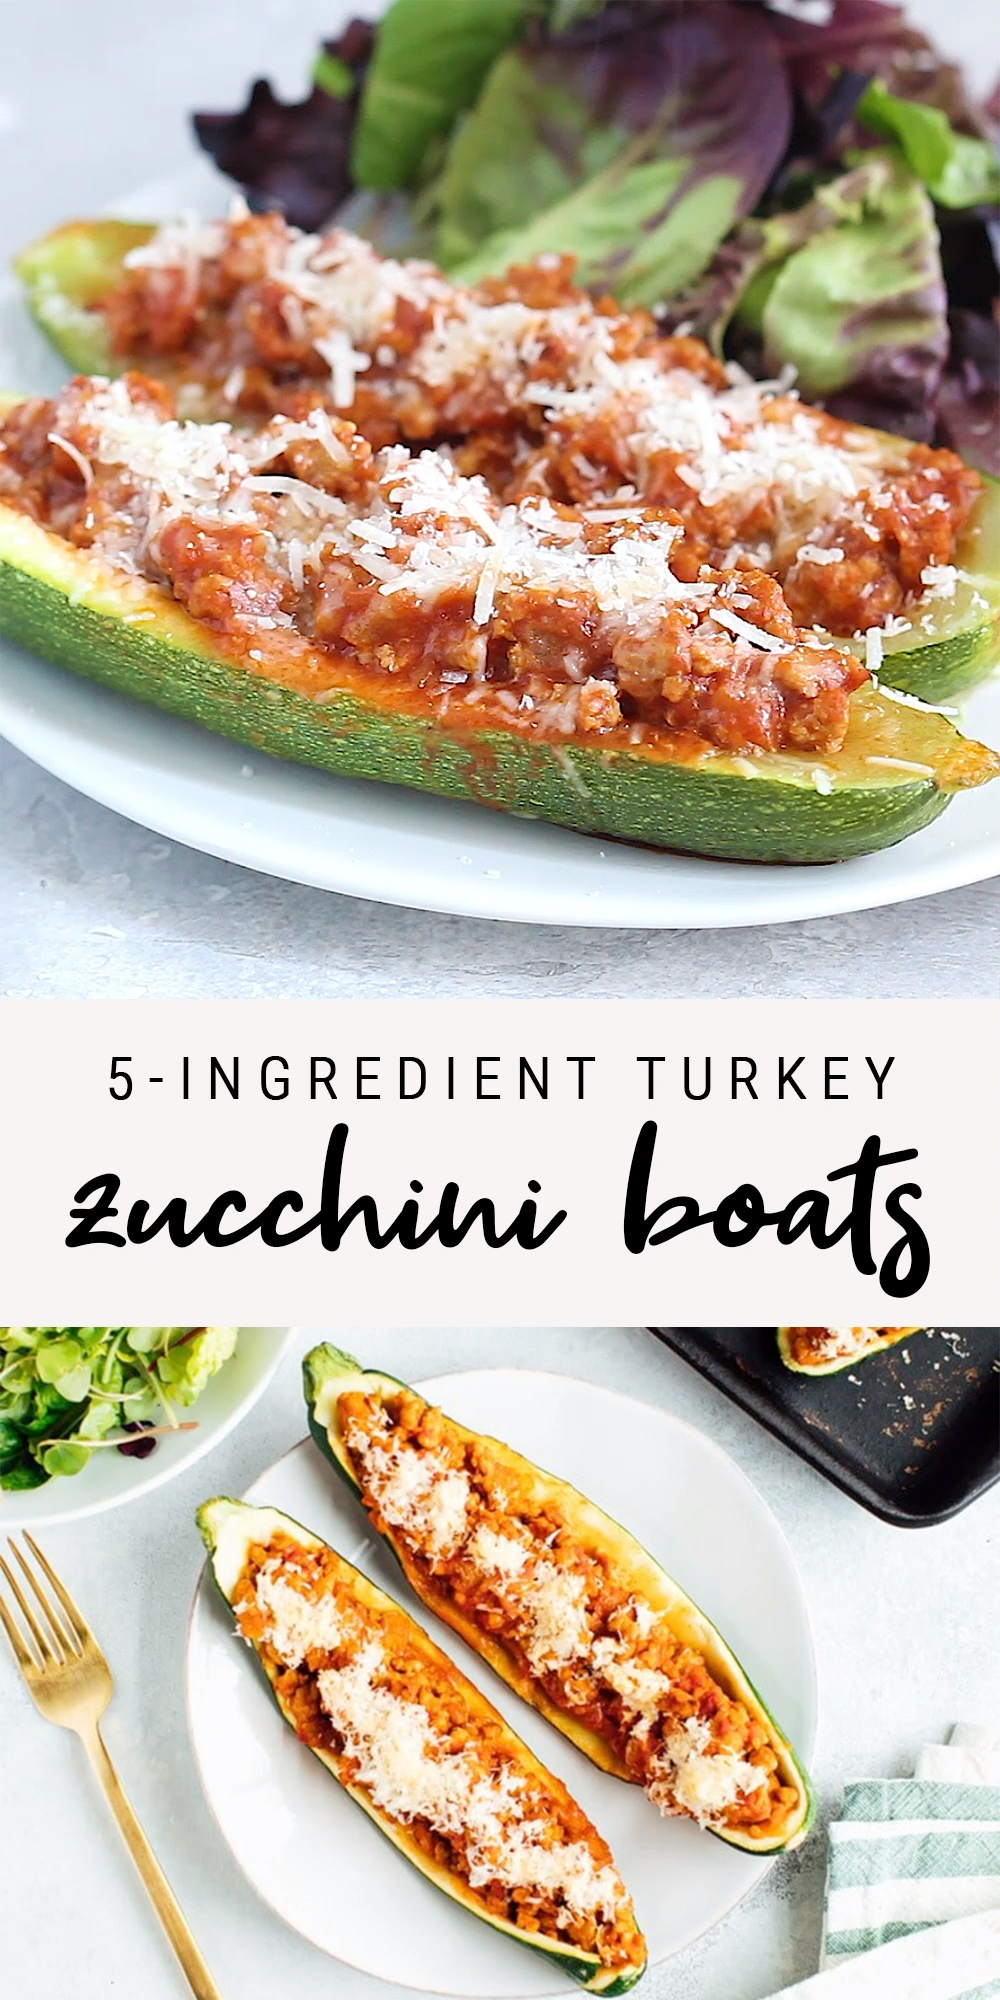 Photo of Healthy 5-Ingredient Turkey Zucchini Boats